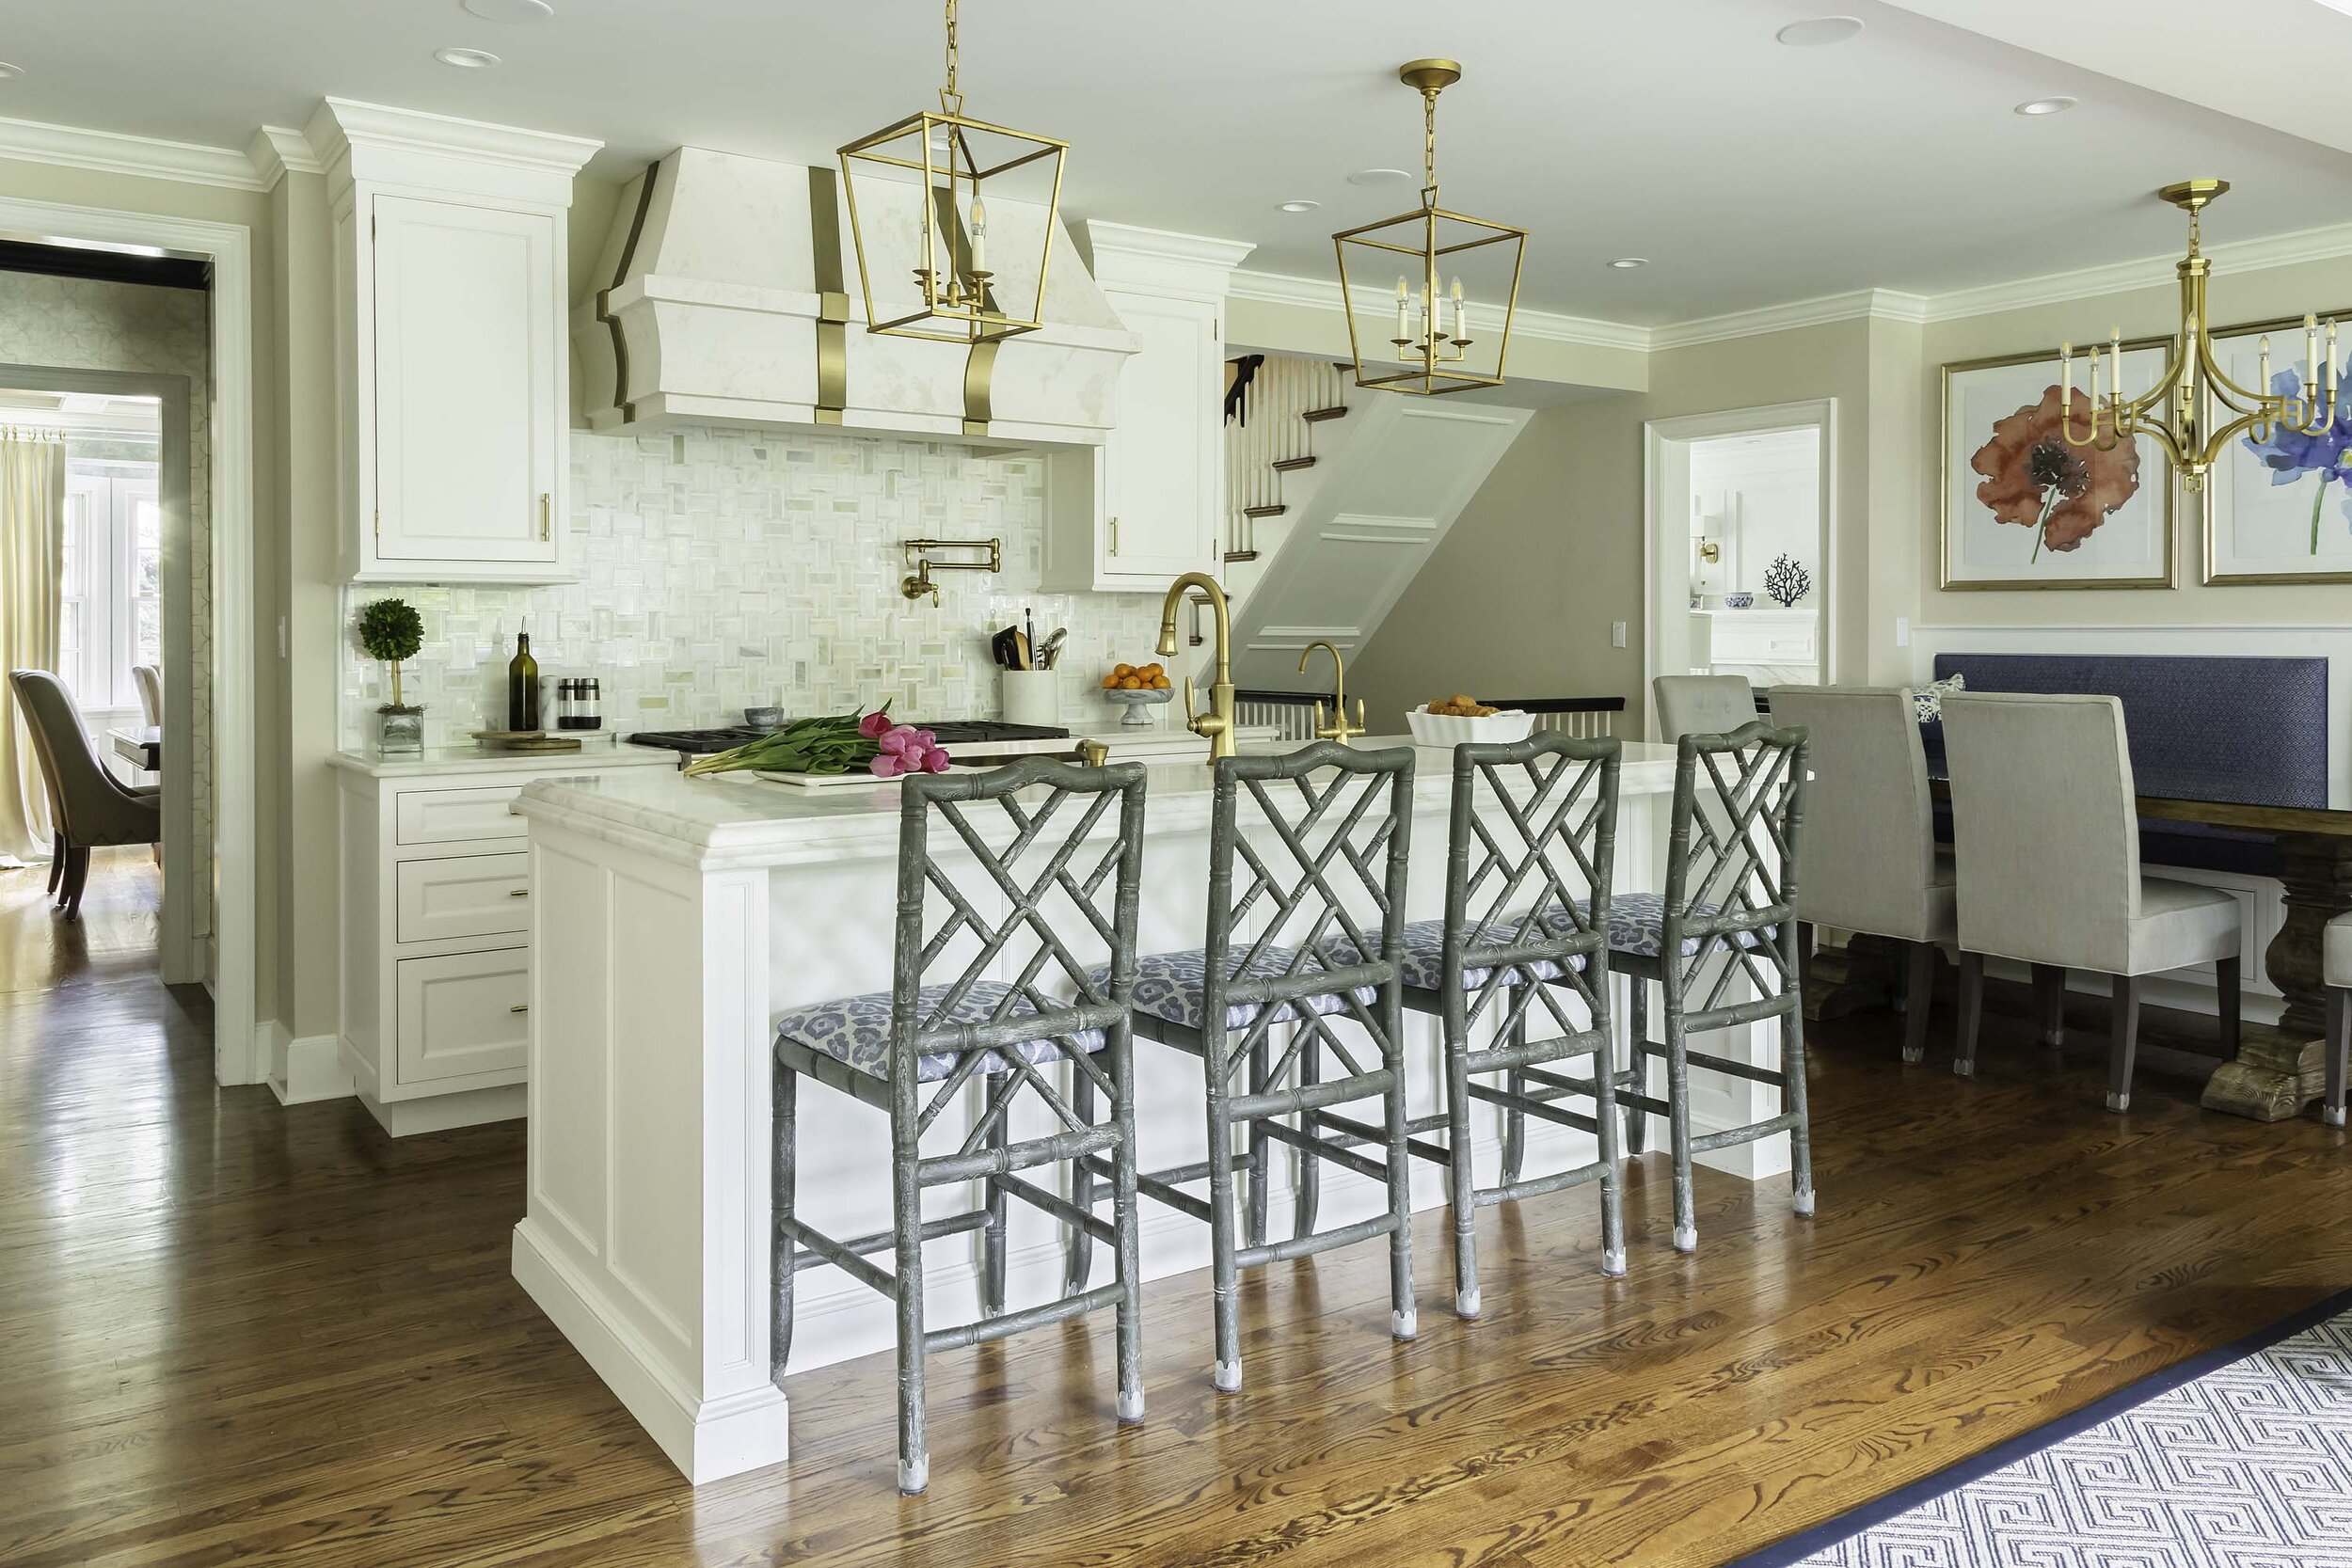 transitional white kitchen with brass accents opens to the family dining area